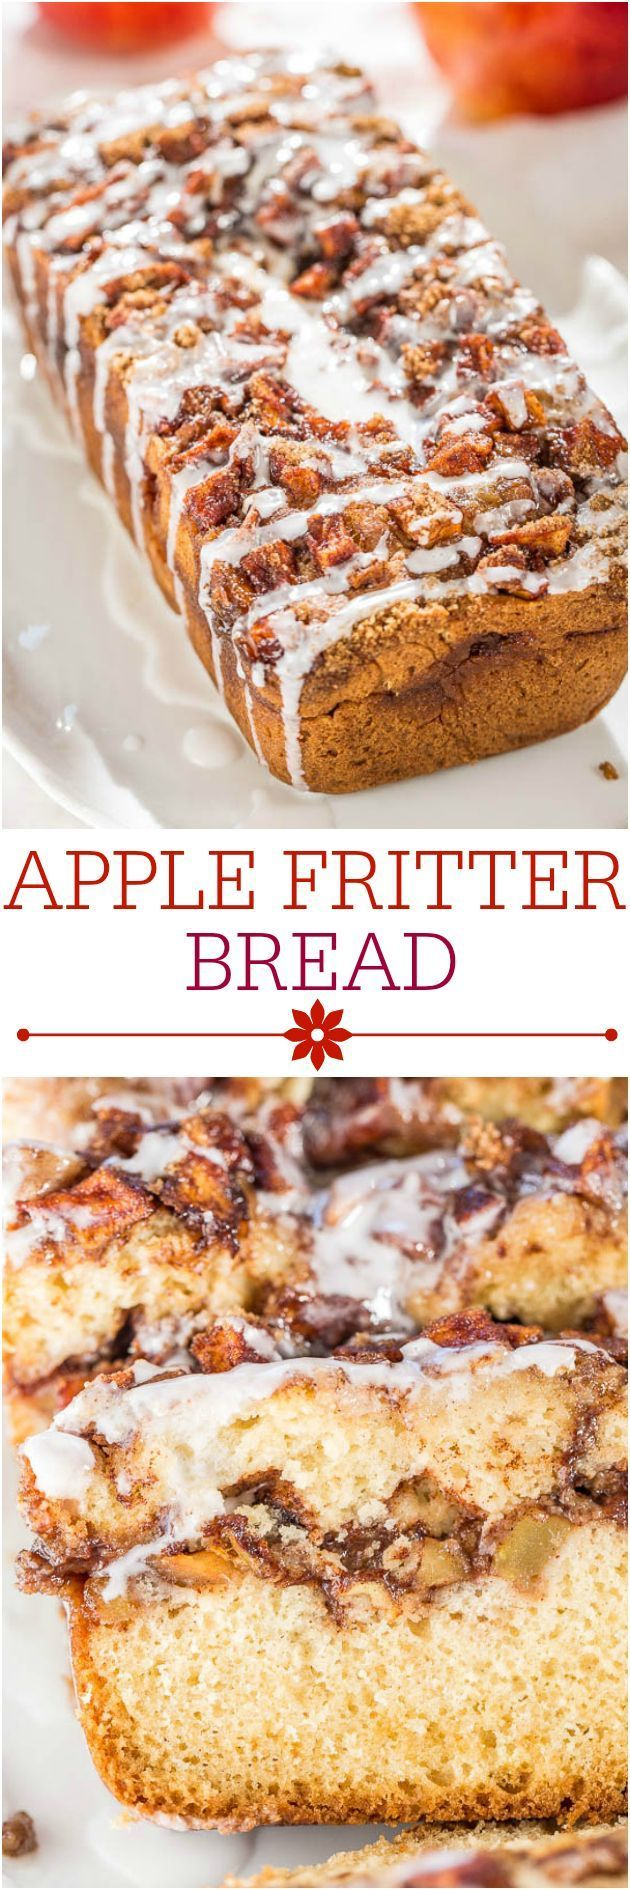 Apple Fritter Bread - Soft, fluffy bread that's stuffed AND topped with apples, cinnamon, and sugar!! Like apple fritters in bread form!! Best apple bread EVER!